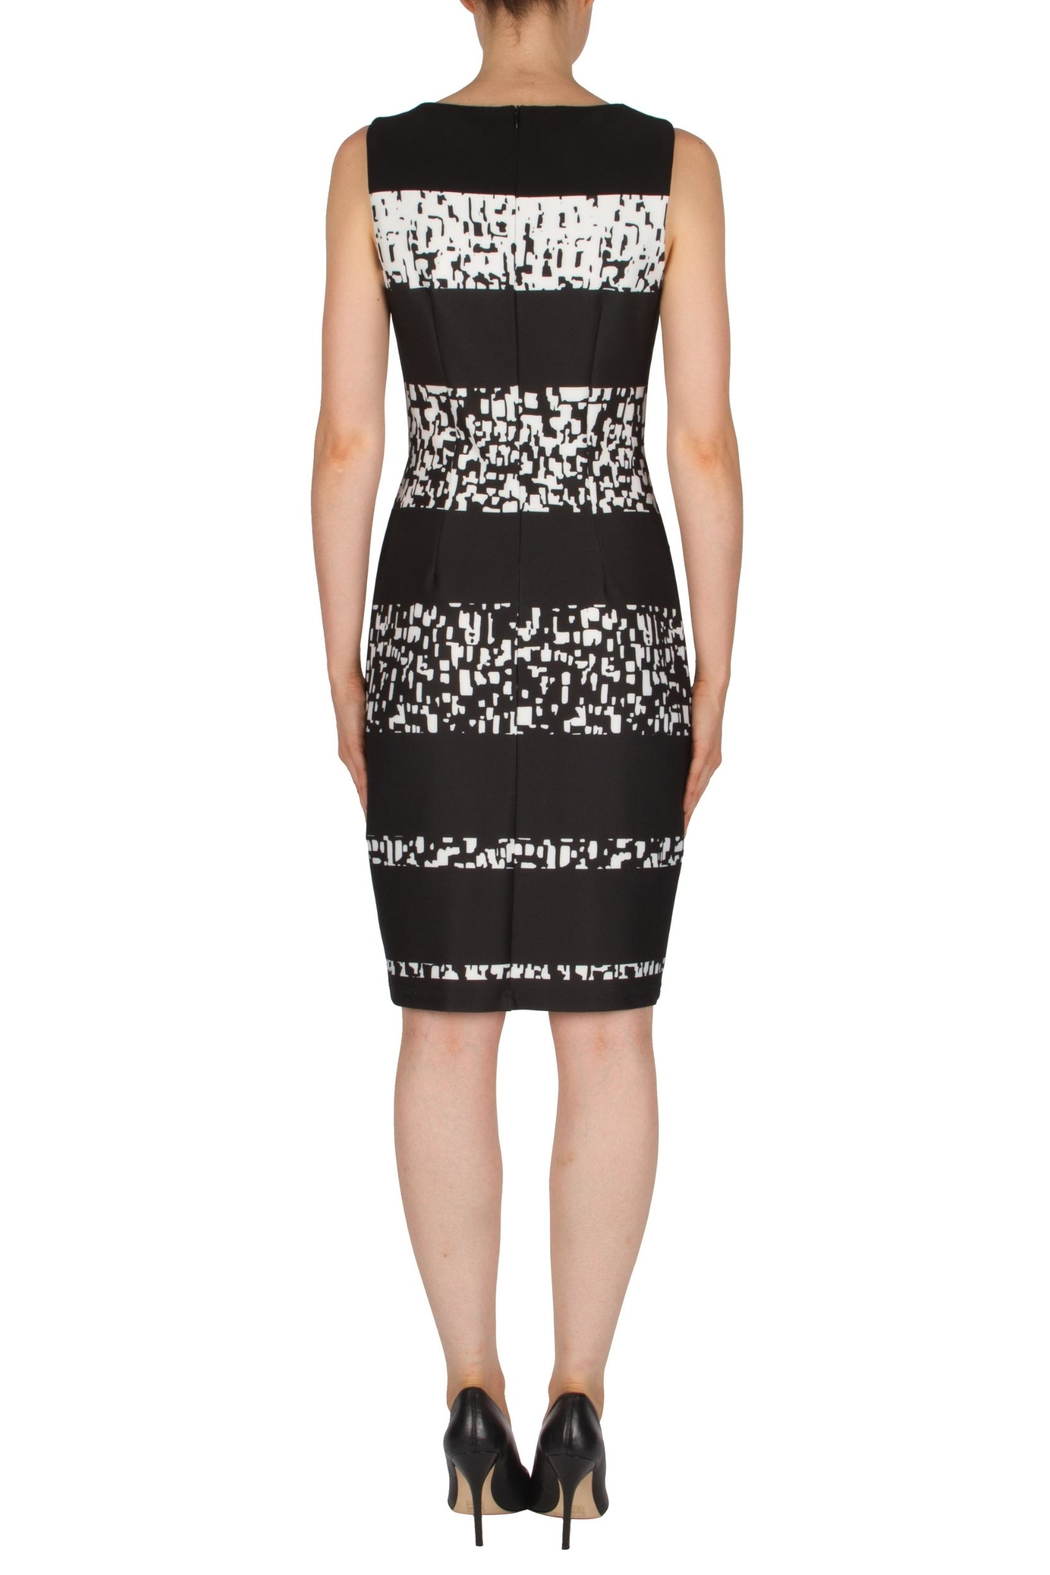 Joseph Ribkoff Banded Printed Dress - Side Cropped Image